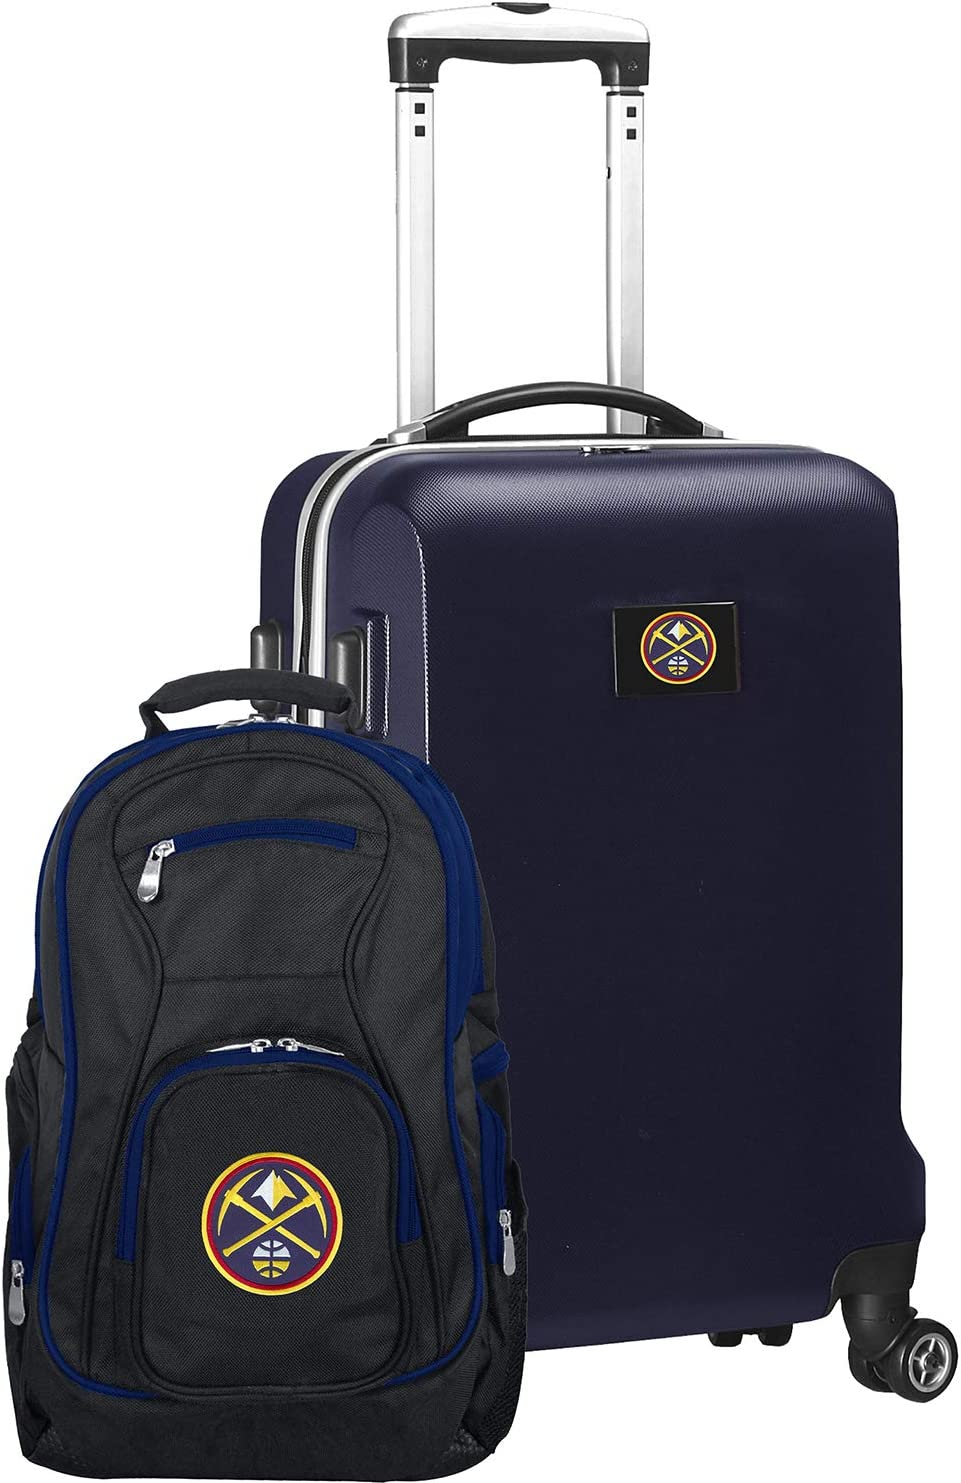 NBA L104 Discount is also underway Deluxe 2-Piece Backpack Navy Luggage and Set Carry-On lowest price